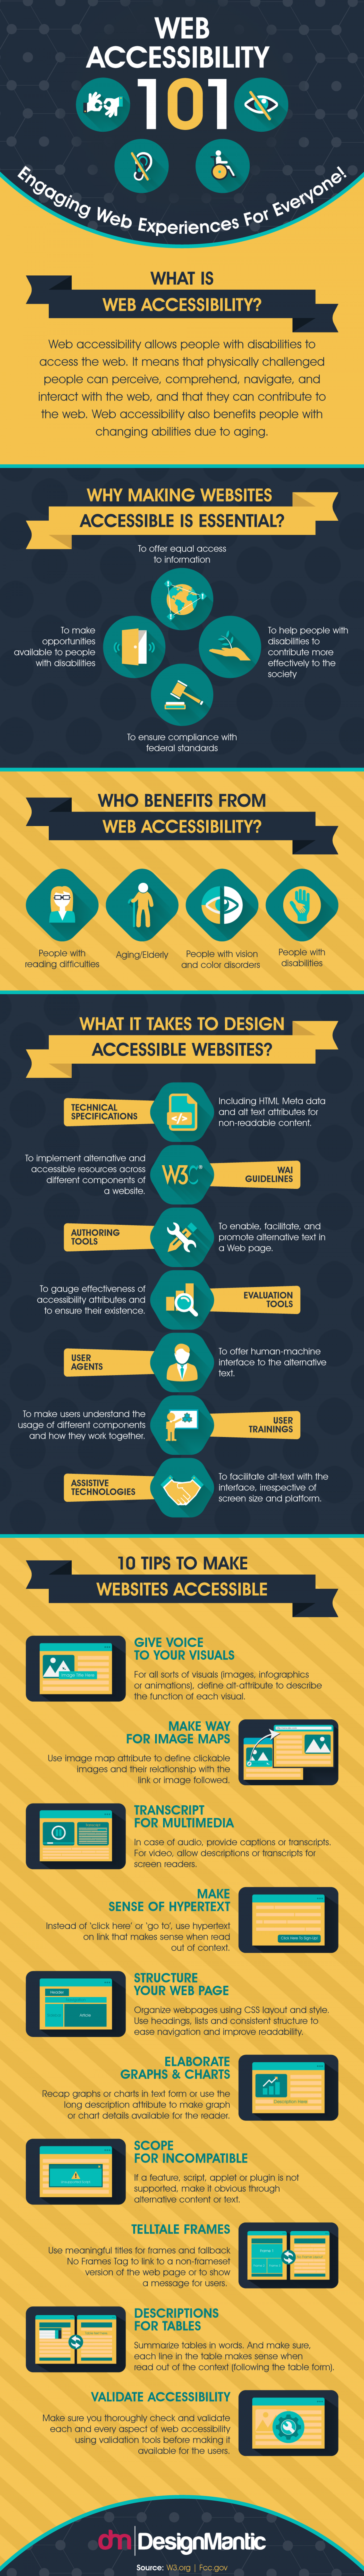 Web Accessibility 101 Infographic